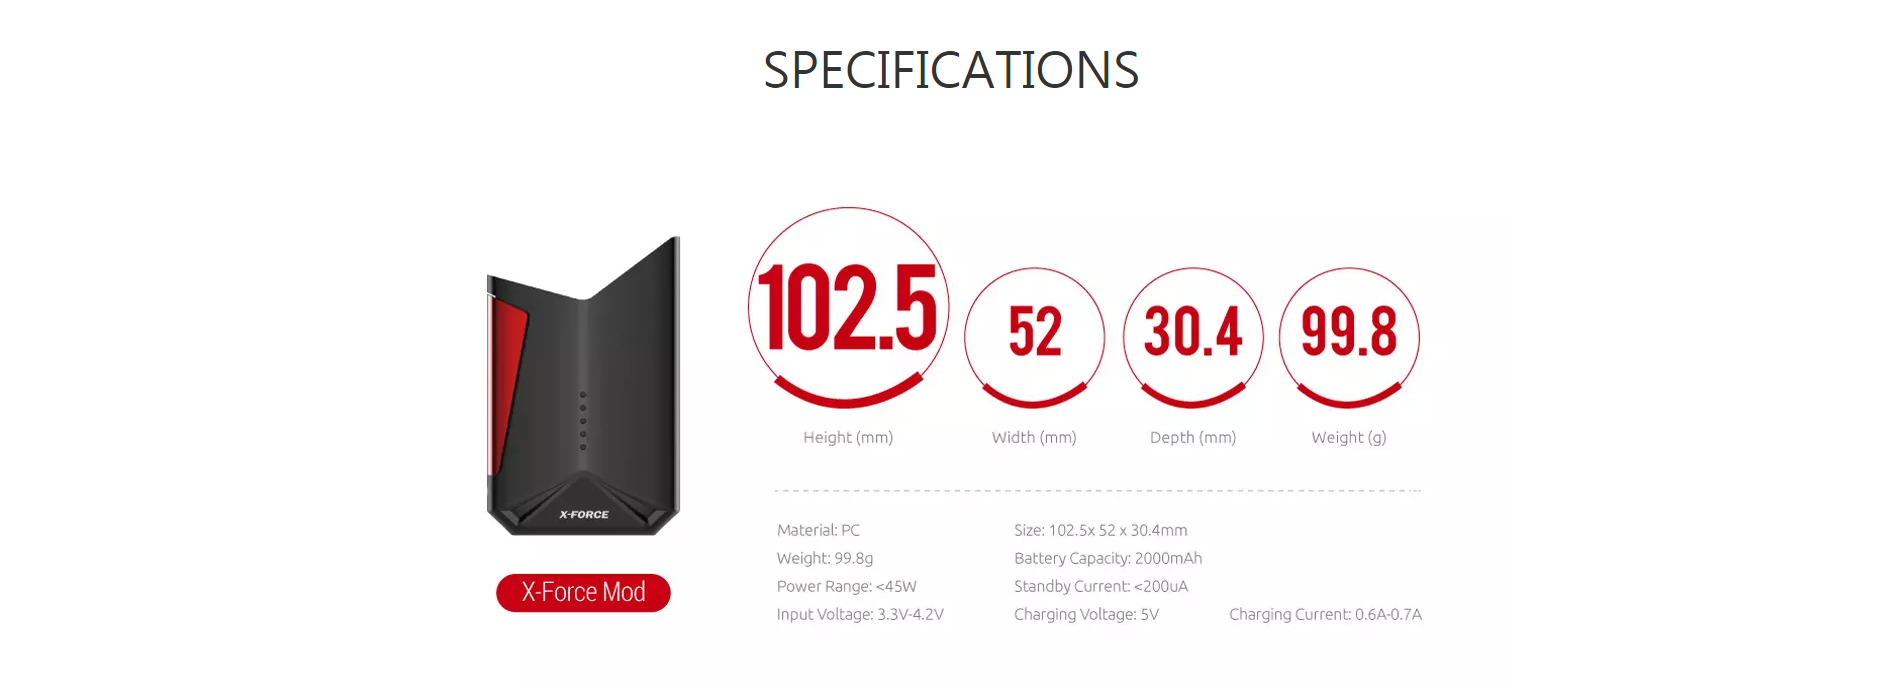 X-Force Specifications